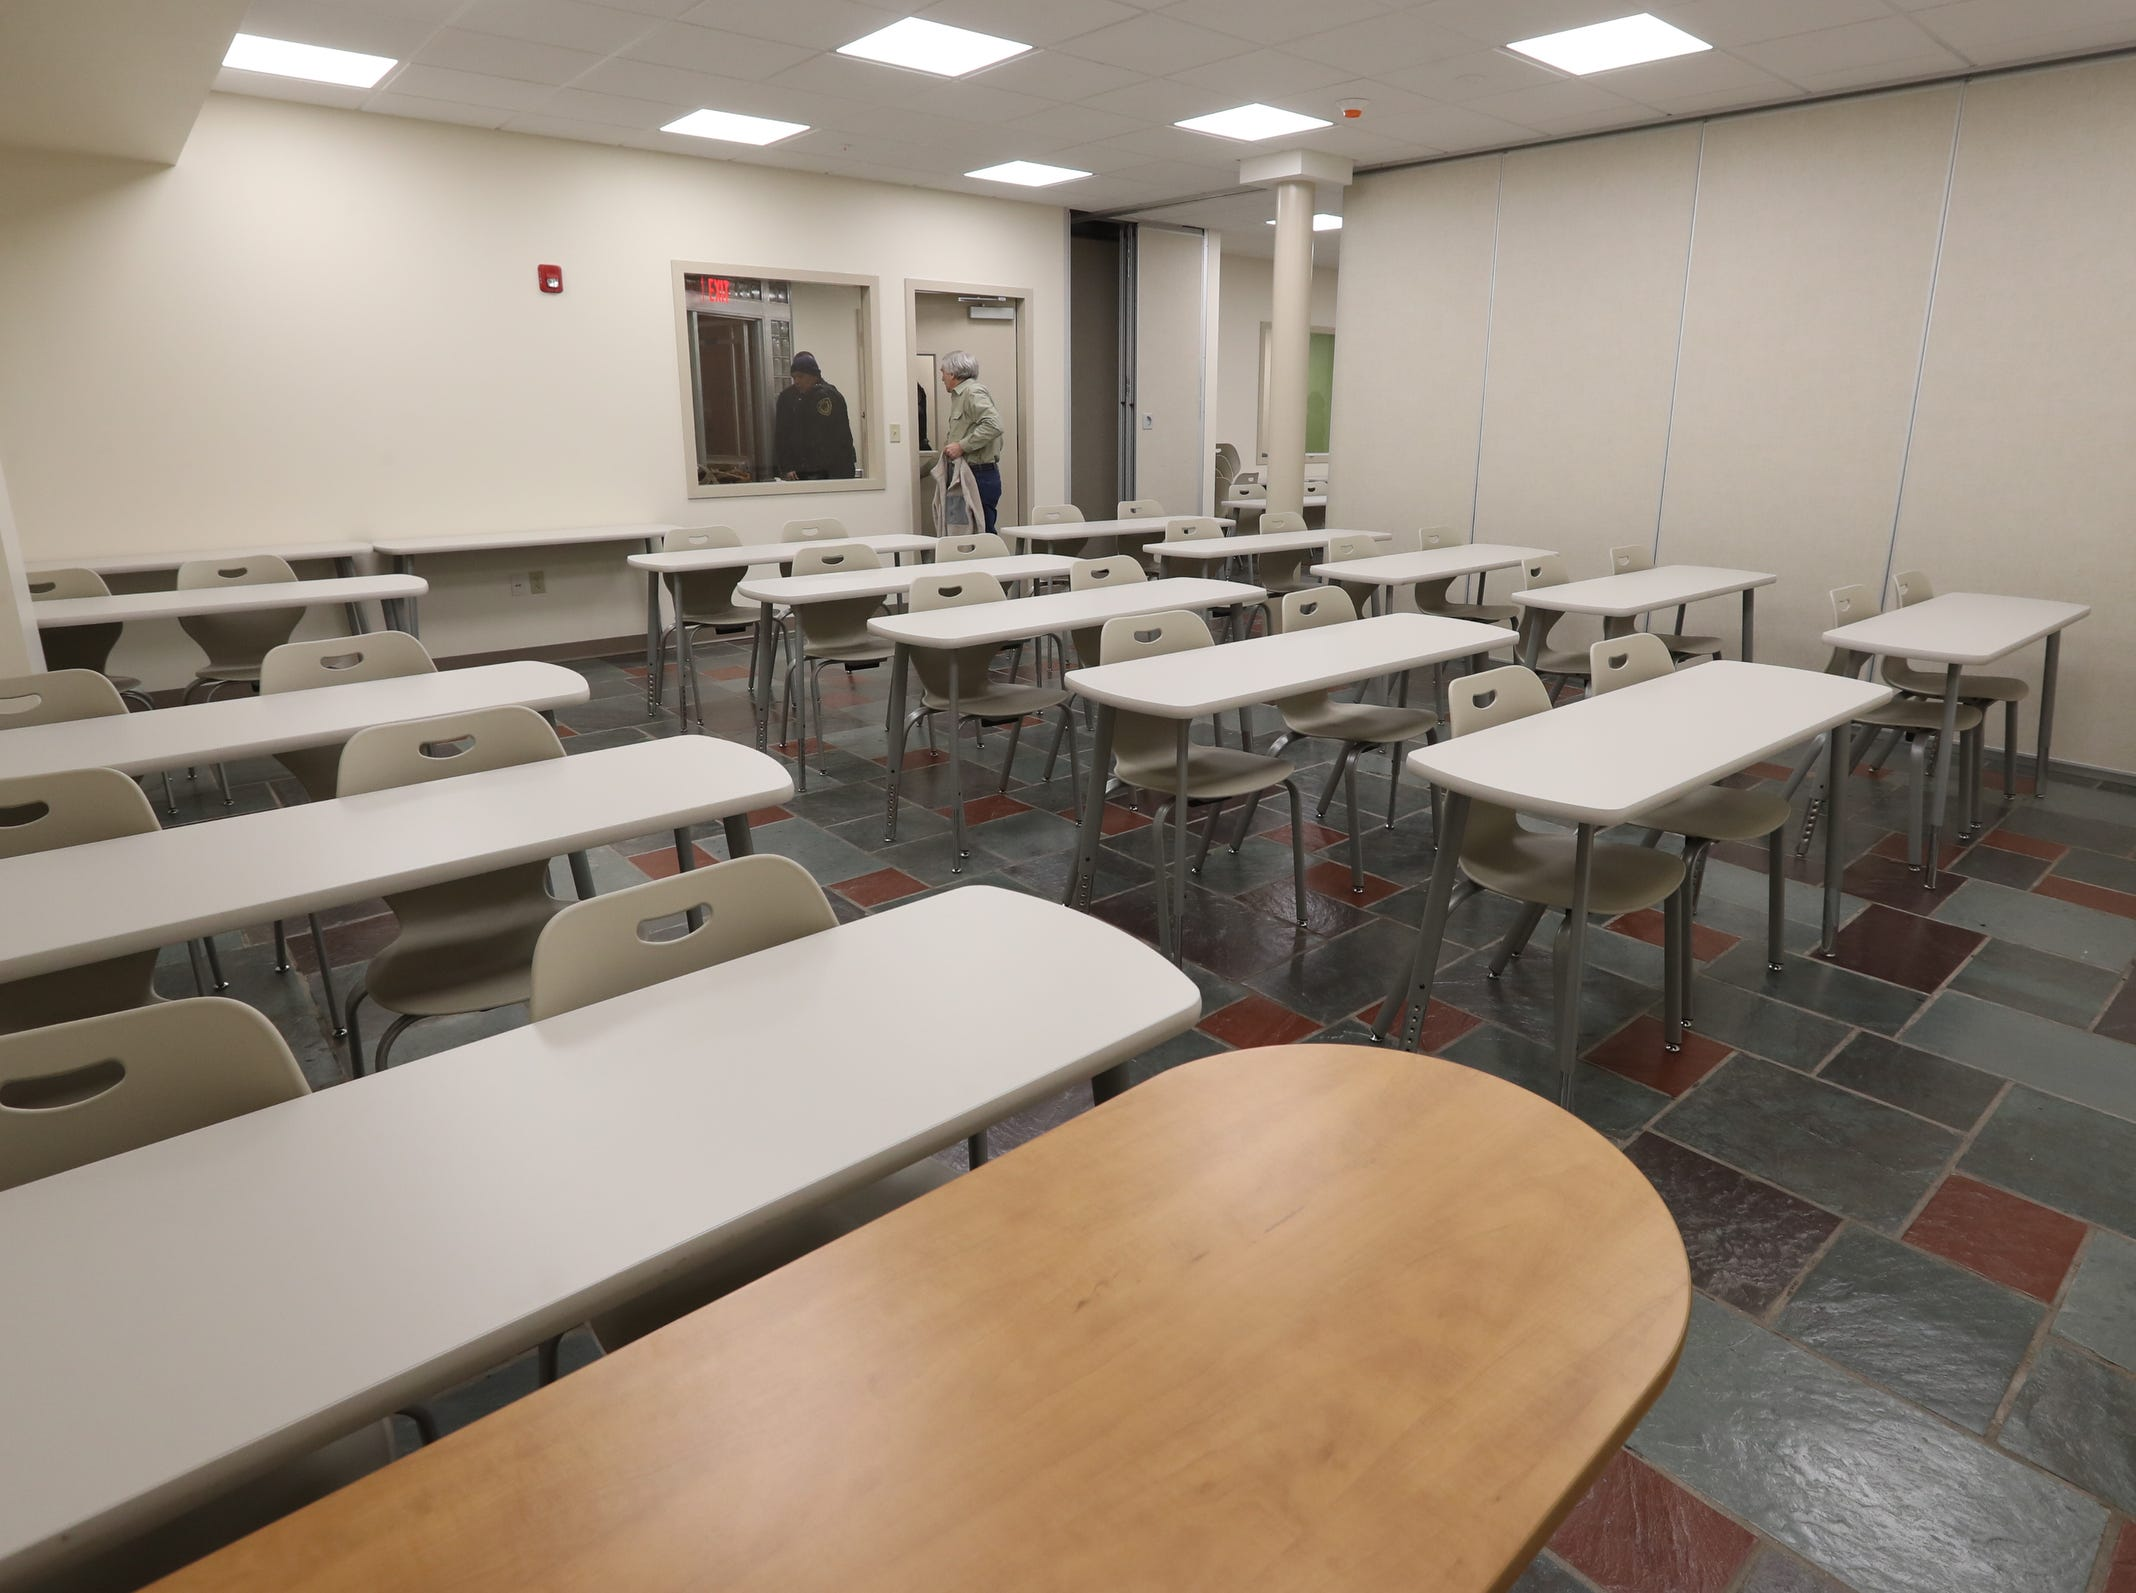 A large classroom at Rockland Community College's Hospitality and Culinary Arts Center in Nyack on Thursday, January 17, 2019.